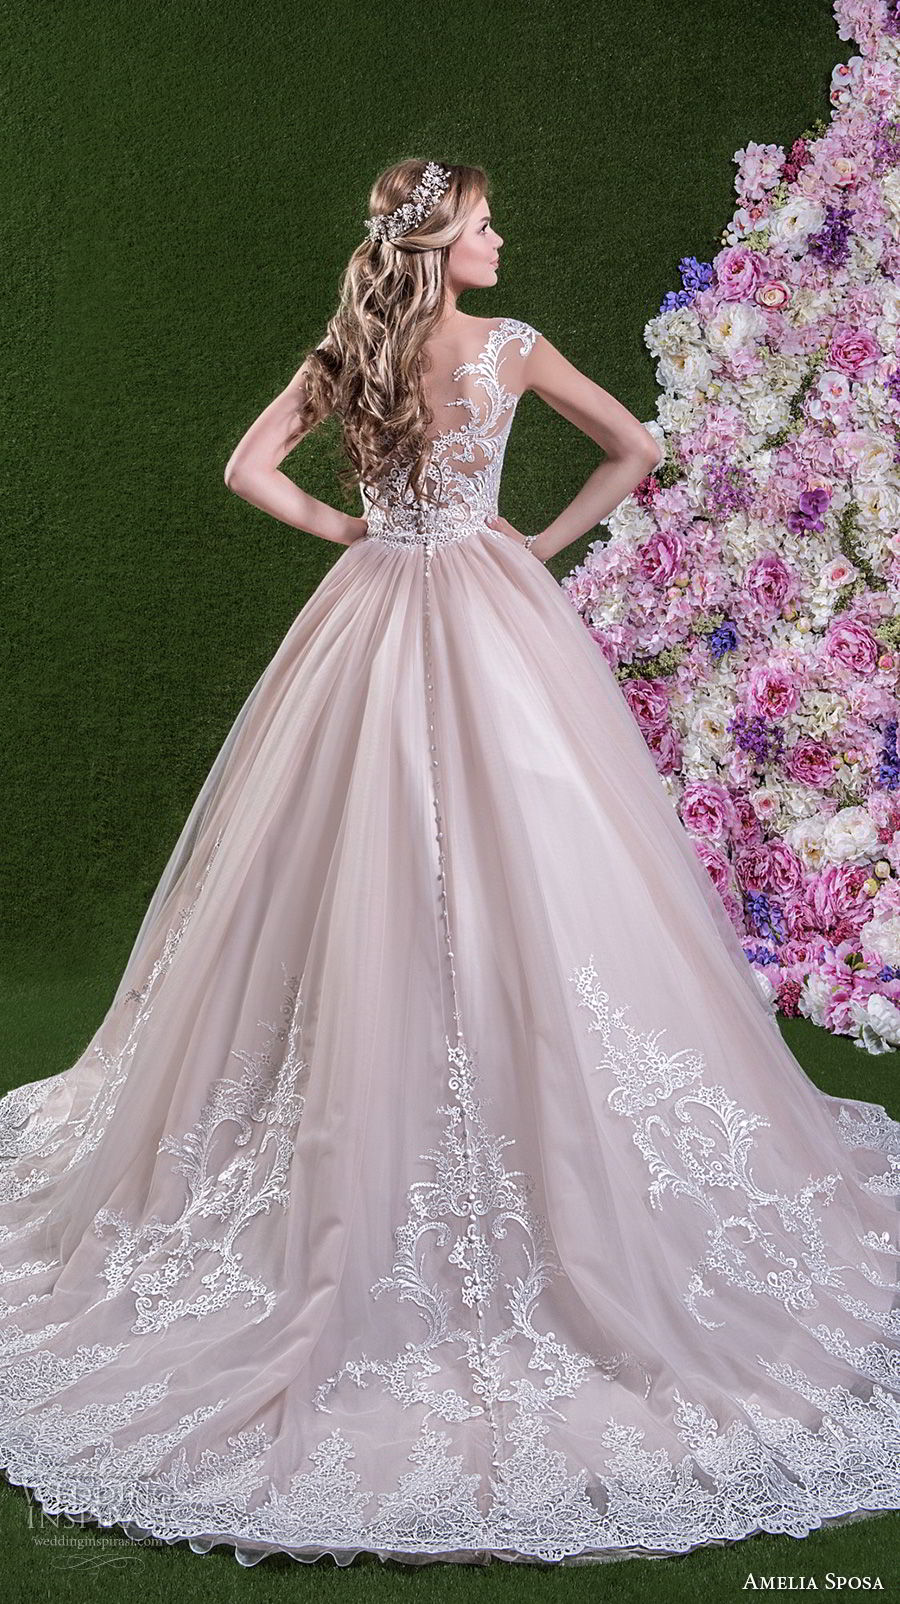 amelia sposa 2018 bridal cap sleeves sweetheart neckline heavily embellished bodice princess pink ball gown wedding dress lace back chapel train (leonarda) bv